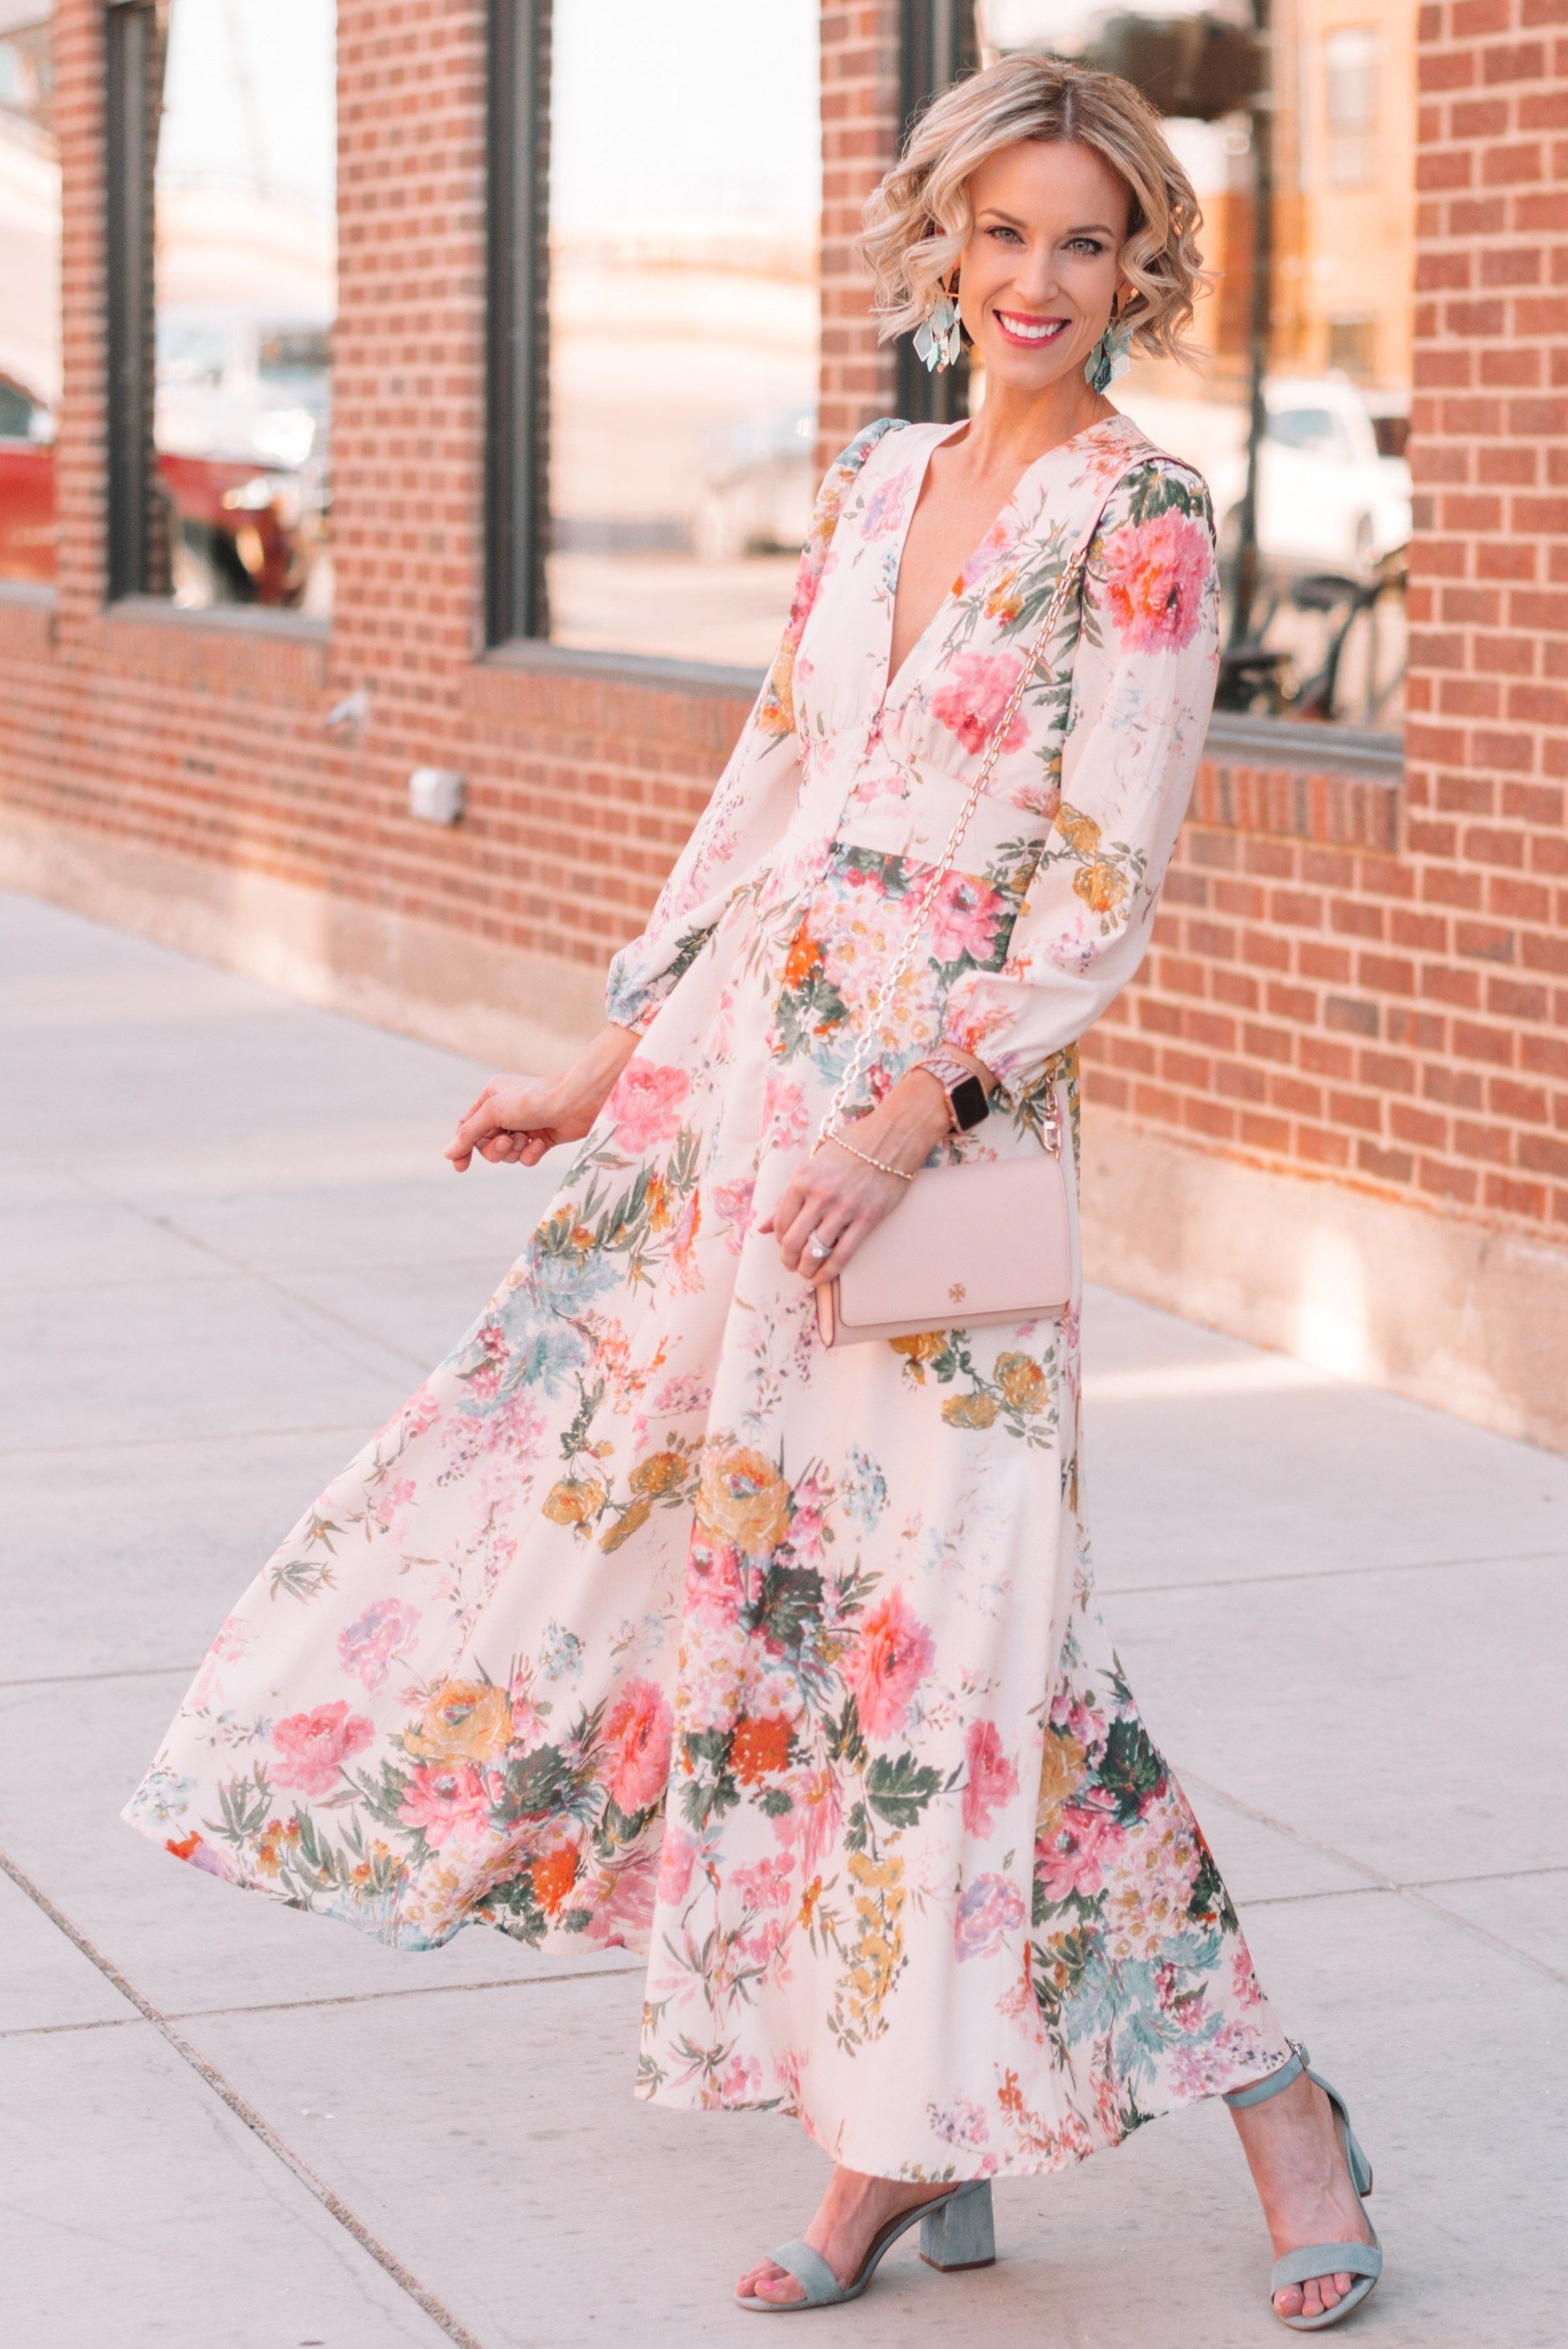 The Most Flattering Style Dress Easter Dress Ideas Straight A Style Dresses Fashion Flattering Fashion [ 3235 x 2160 Pixel ]